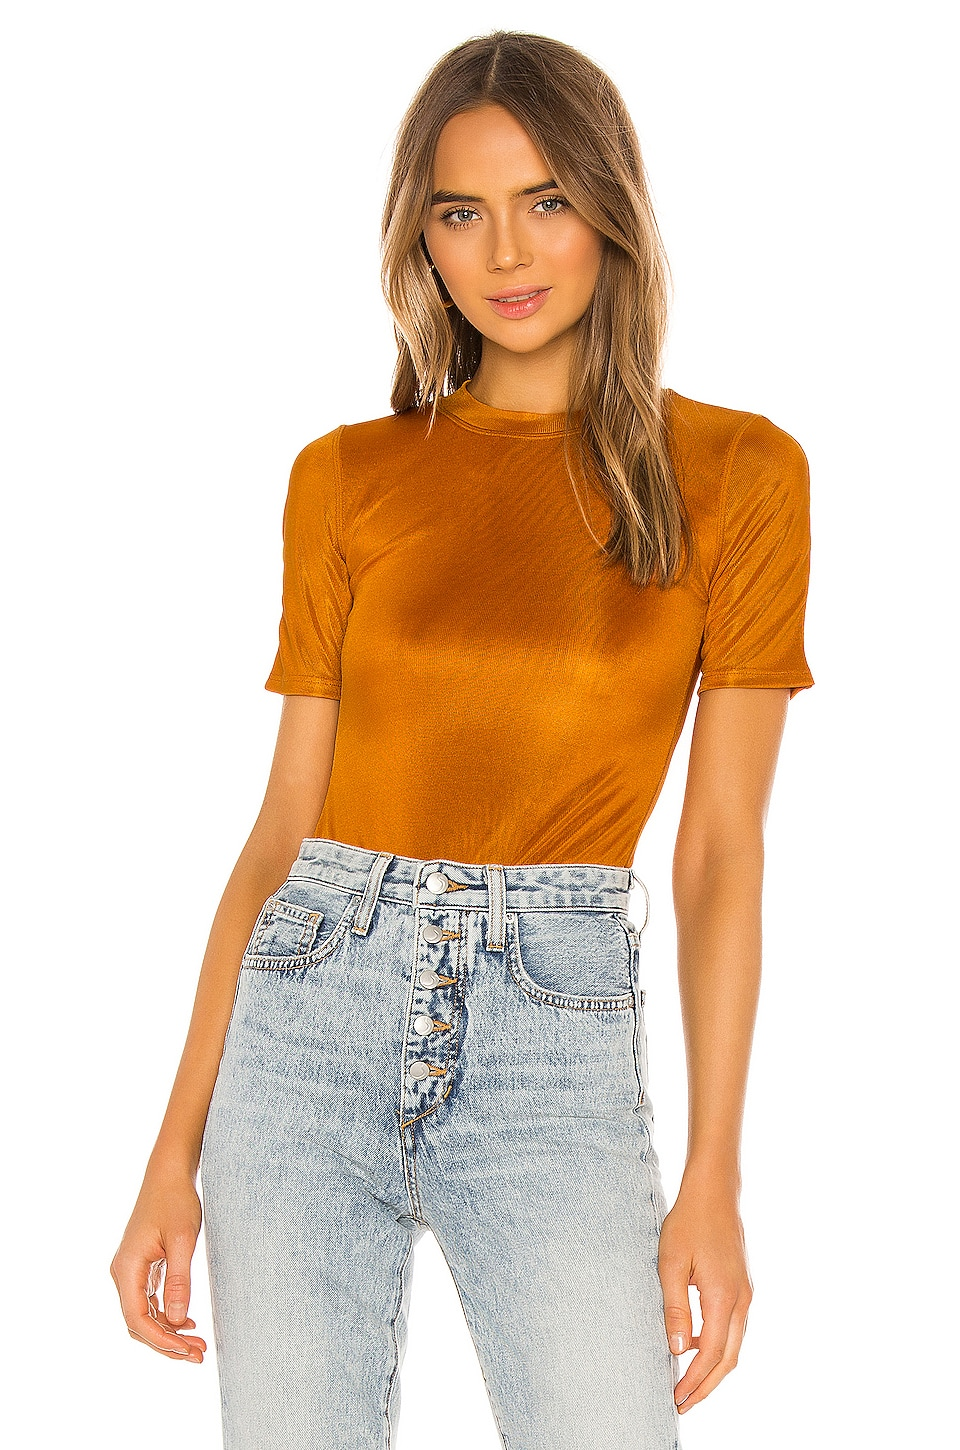 ALIX NYC Ridge Bodysuit in Saffron